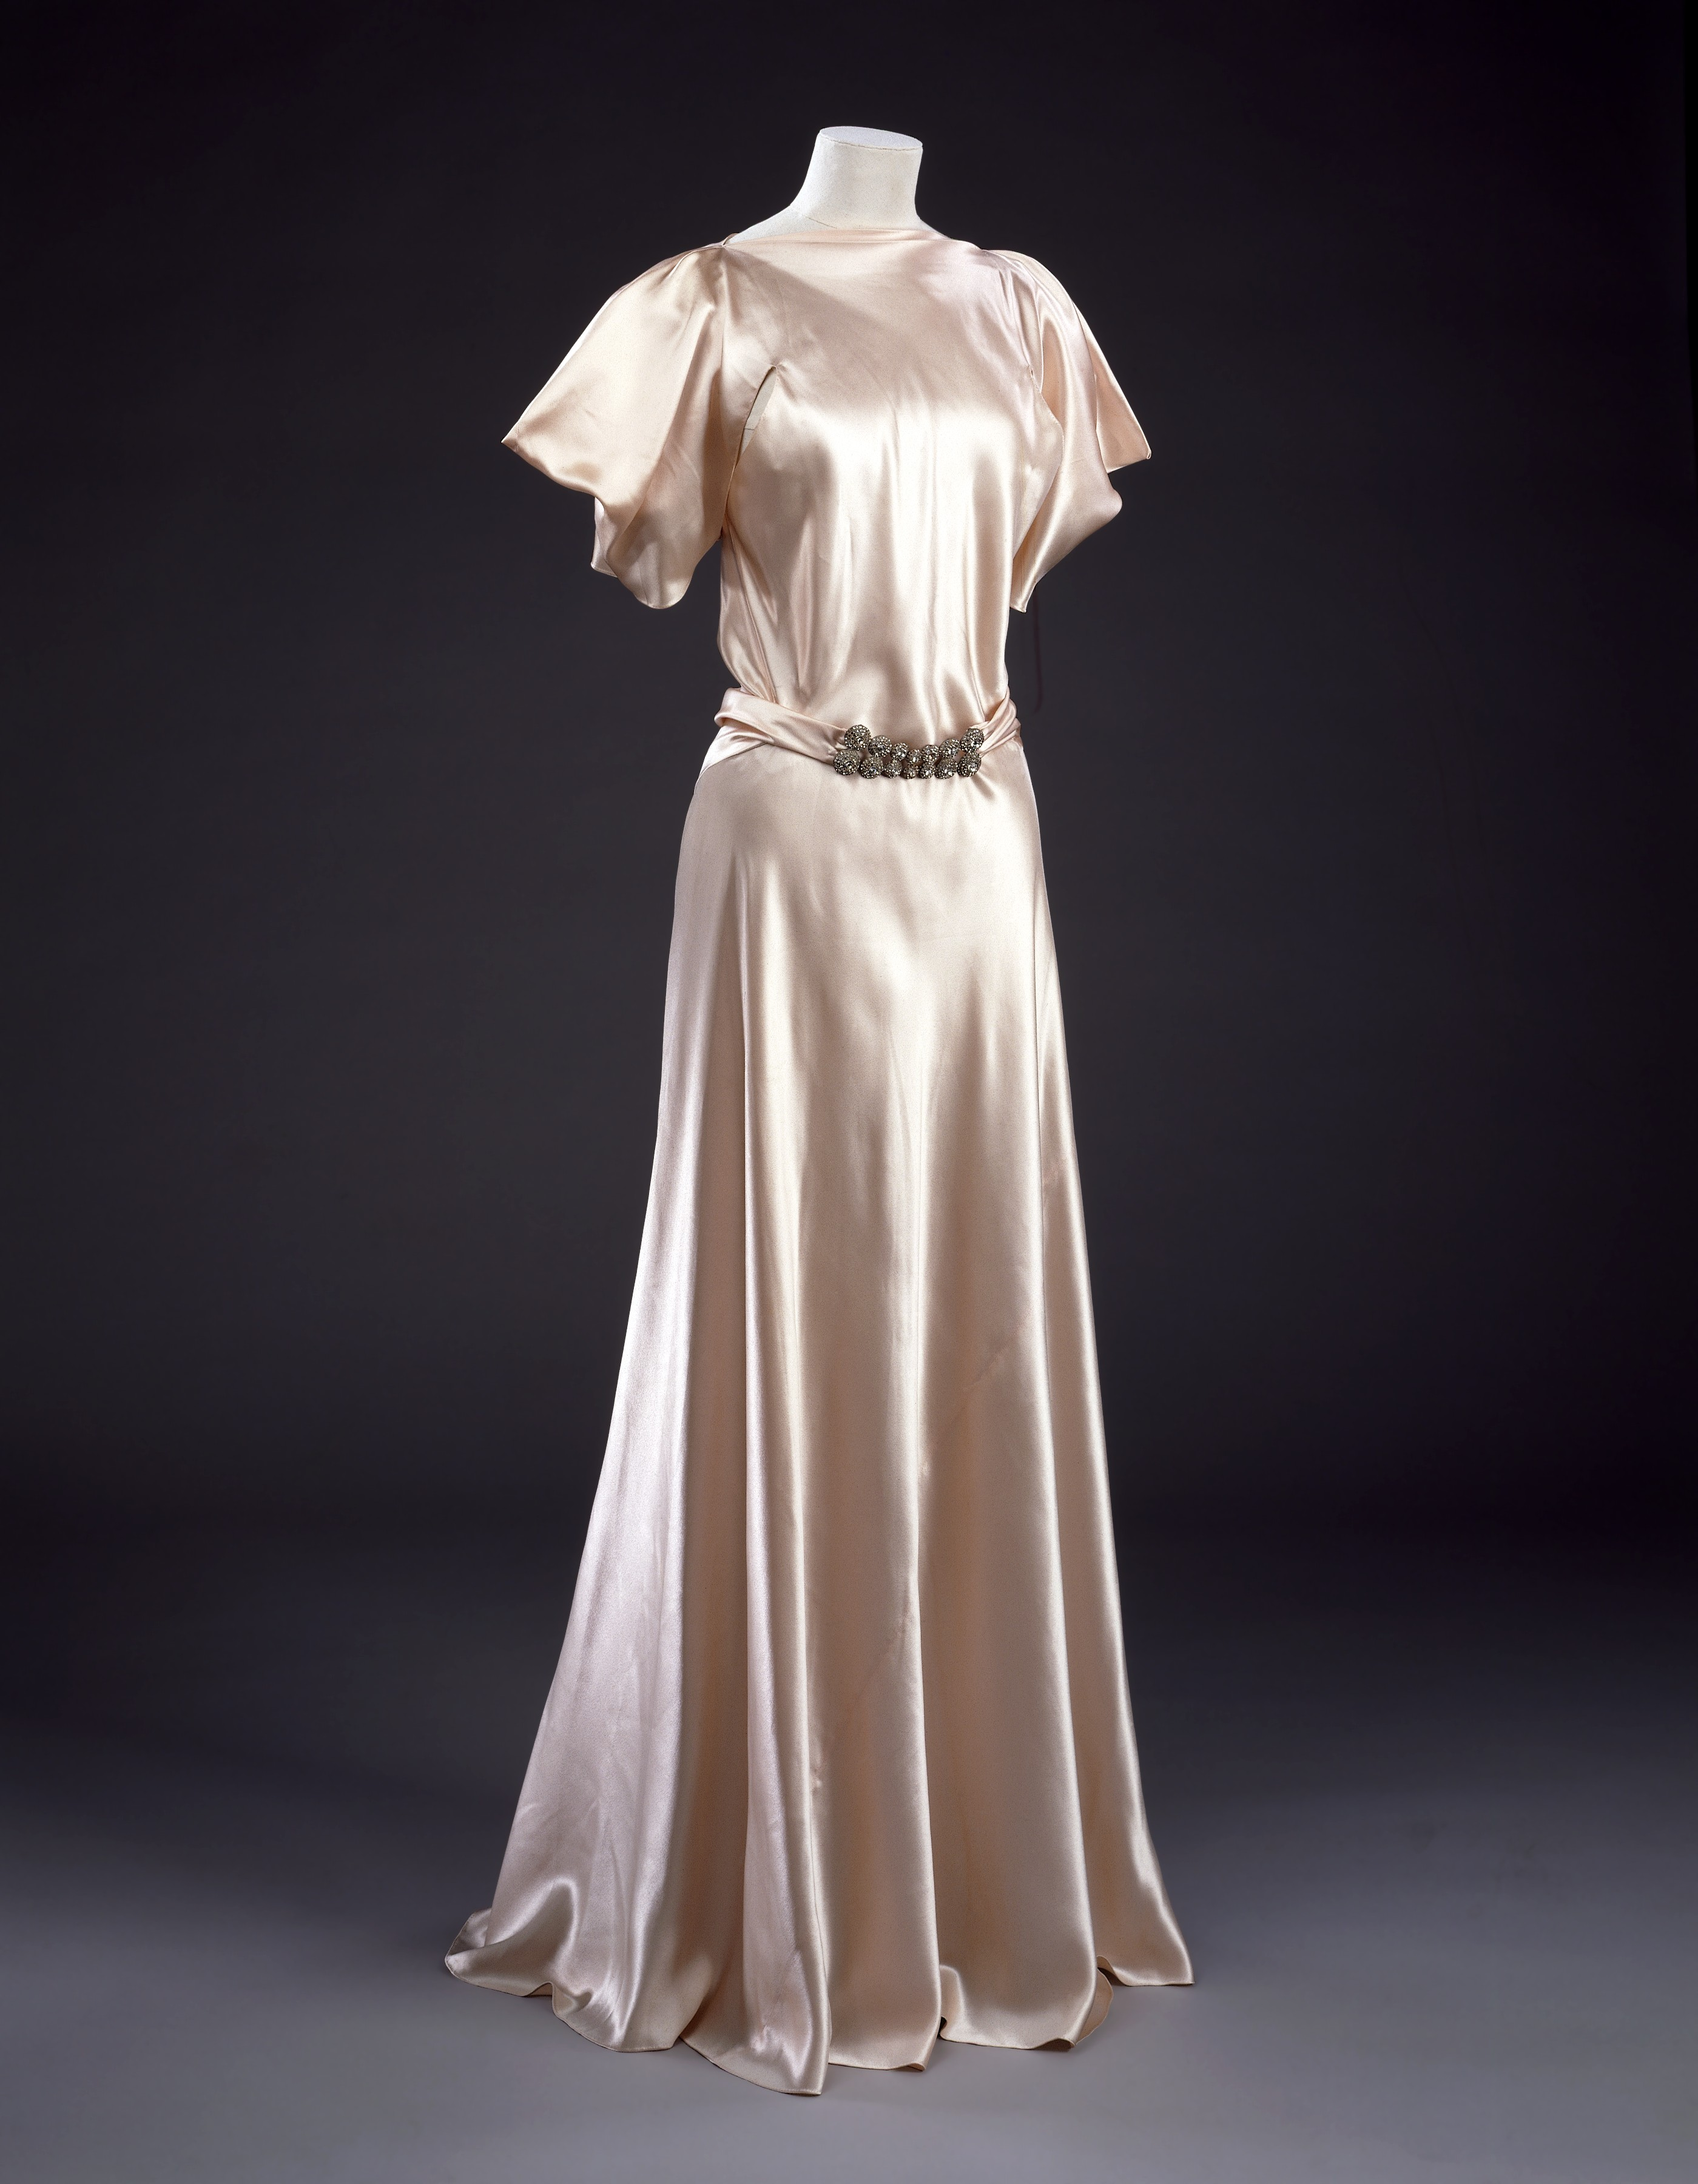 Bias-cut evening dress by Madeline Vionnet, 1933. Source: Dulwichonview.com